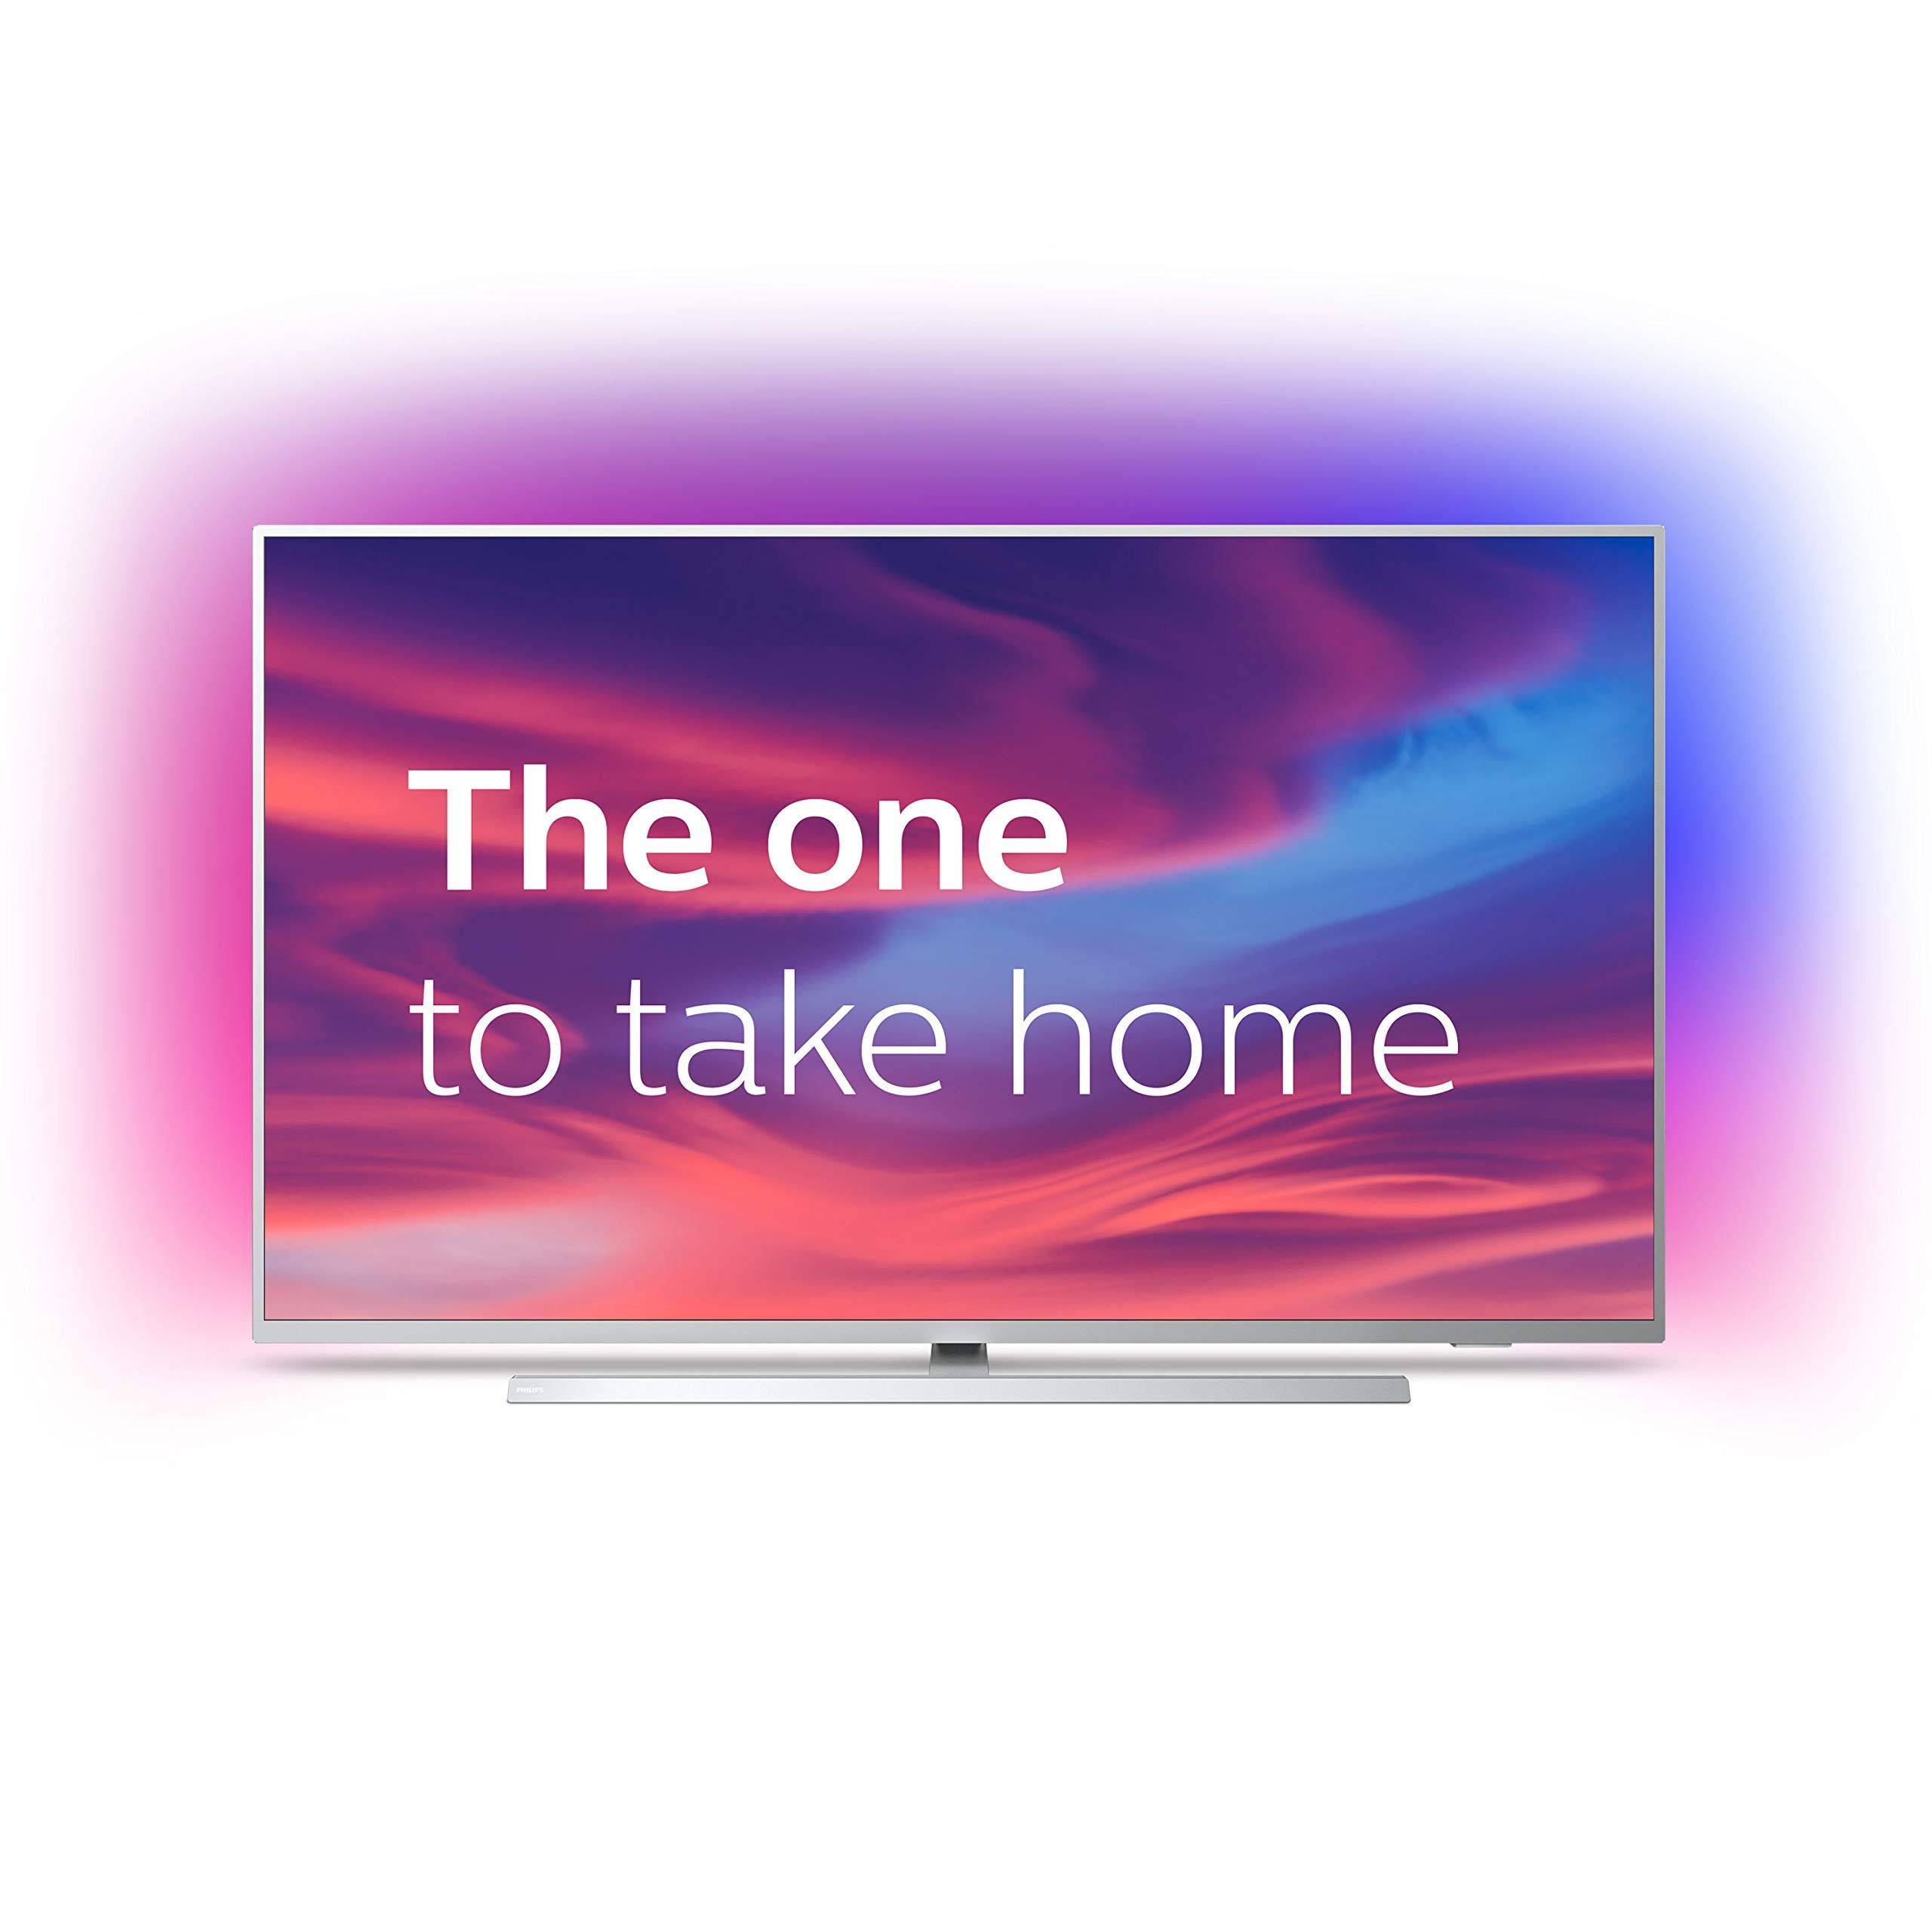 Philips Ambilight 65pus7304 12 Fernseher 164 Cm 65 Zoll Smart Tv 4k Uhd Dolby Vision Dolby Atmos Hdr 10 Android Tv Google As In 2020 Fernseher Android Tv Zoll